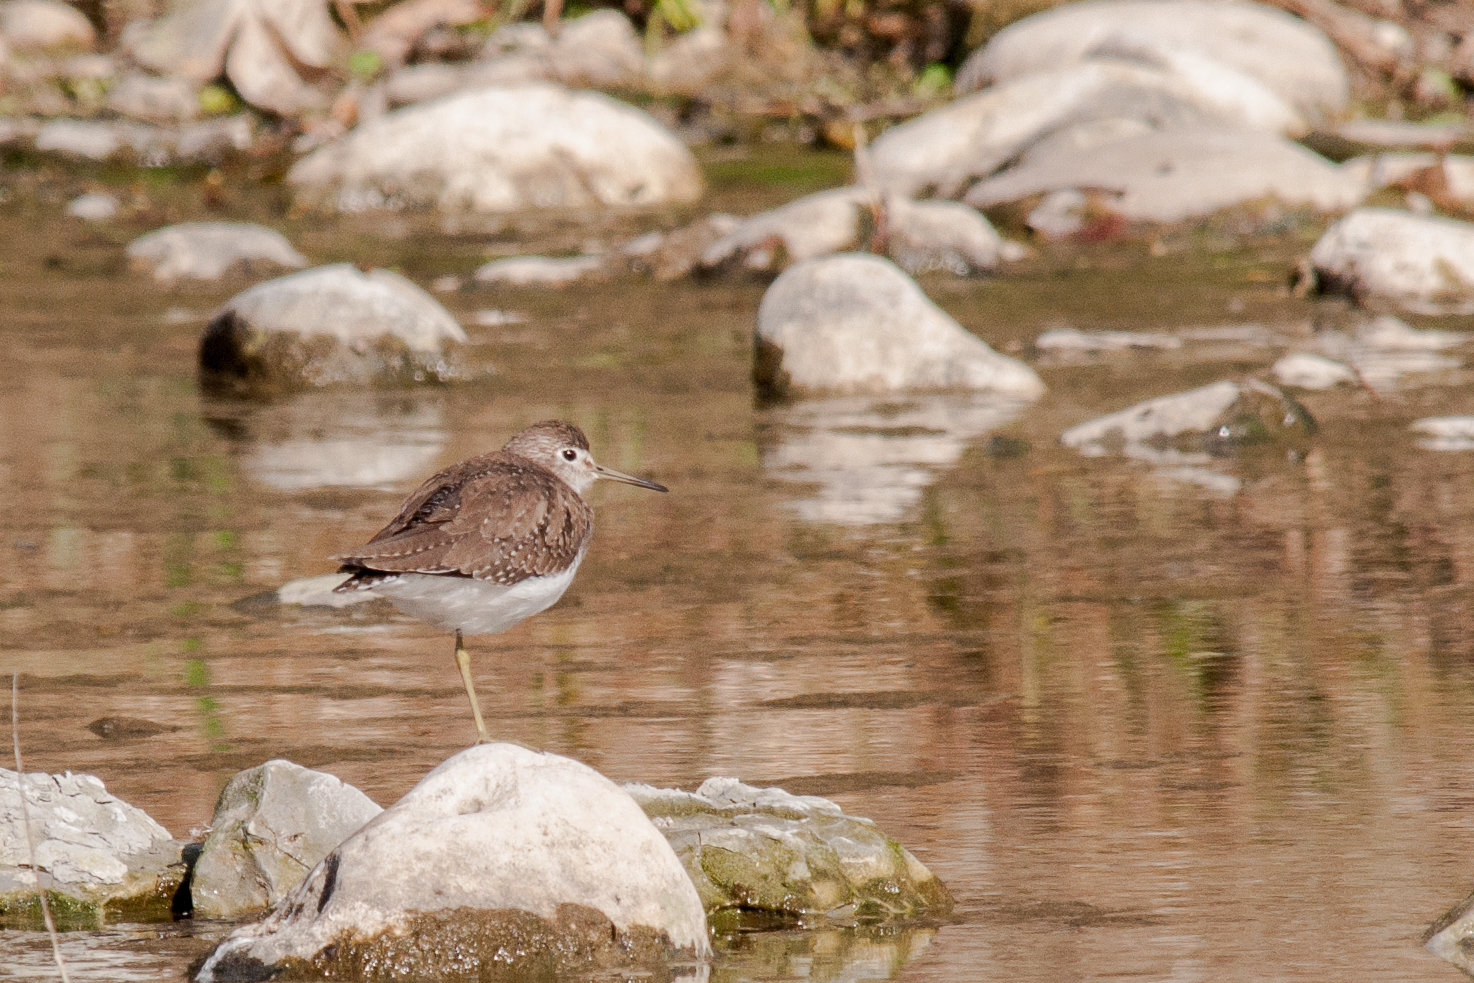 Species: Solitary Sandpiper Photo Credit: Alyssia Church Date: January 2017 Location: Crescent Bend Nature Park